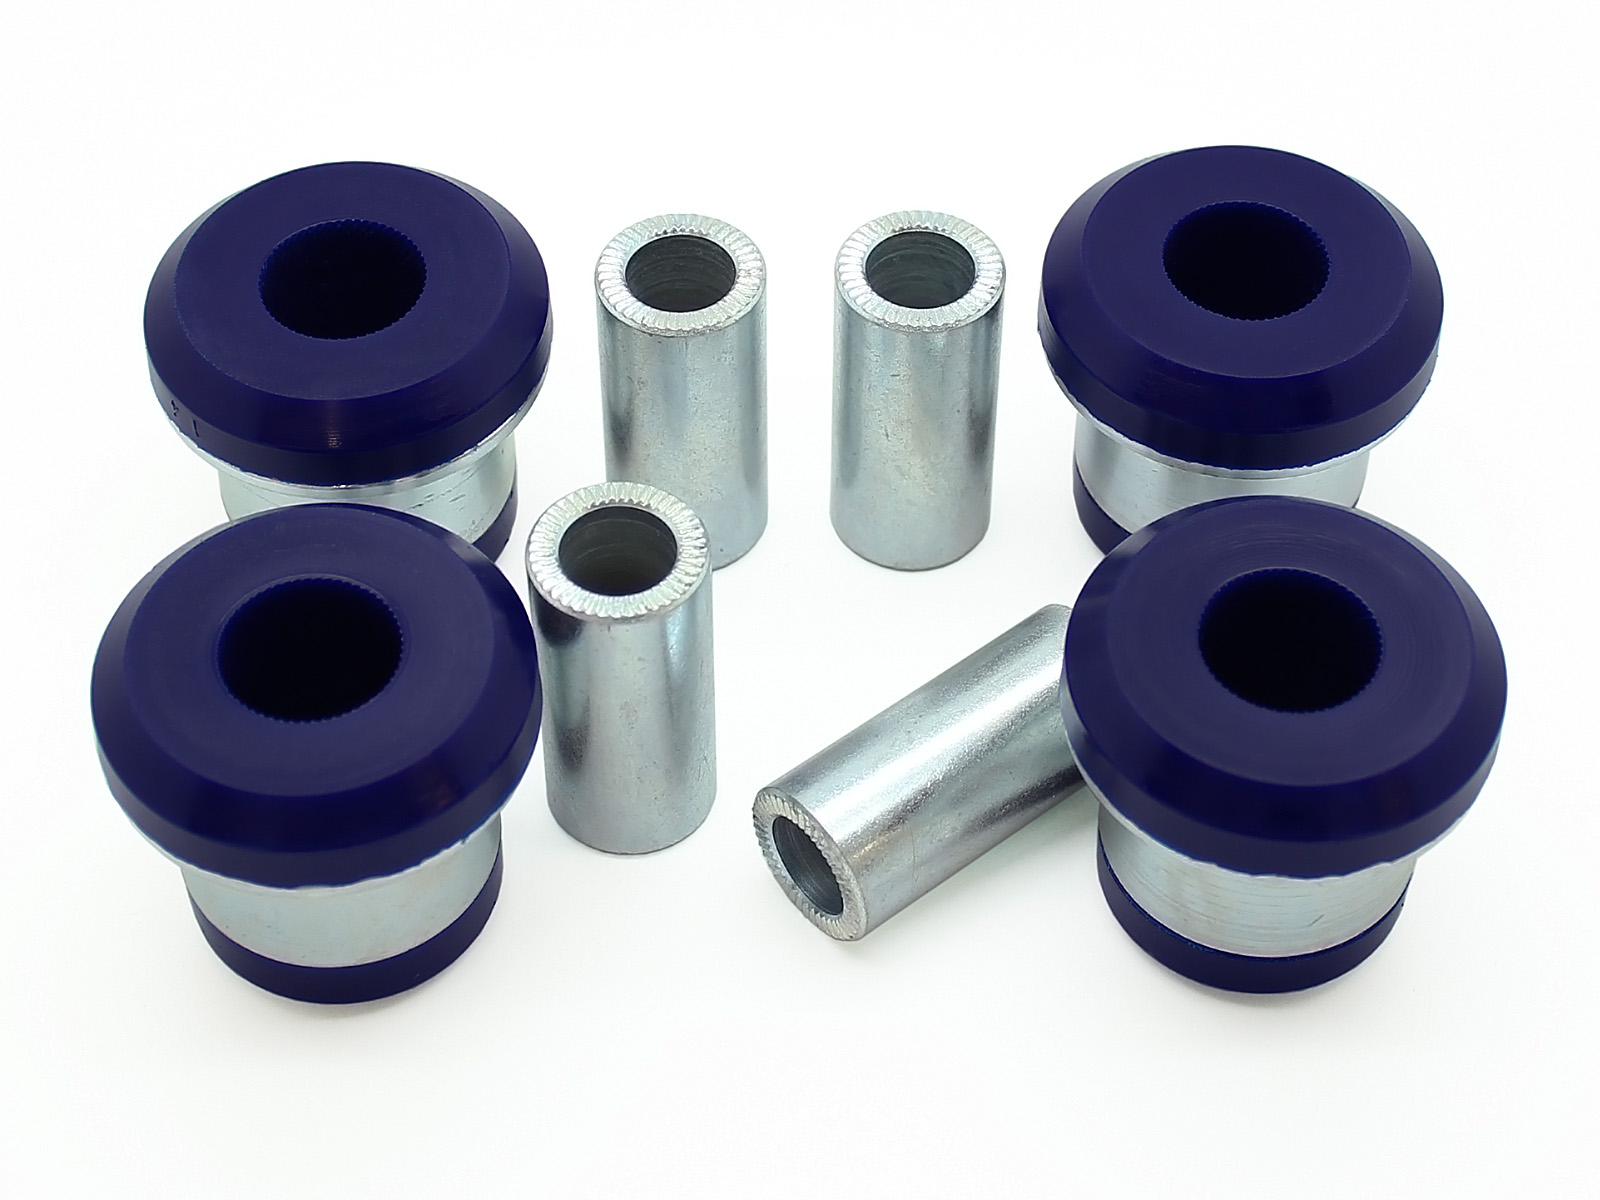 SuperPro Suspension Parts and Poly Bushings forTOYOTA